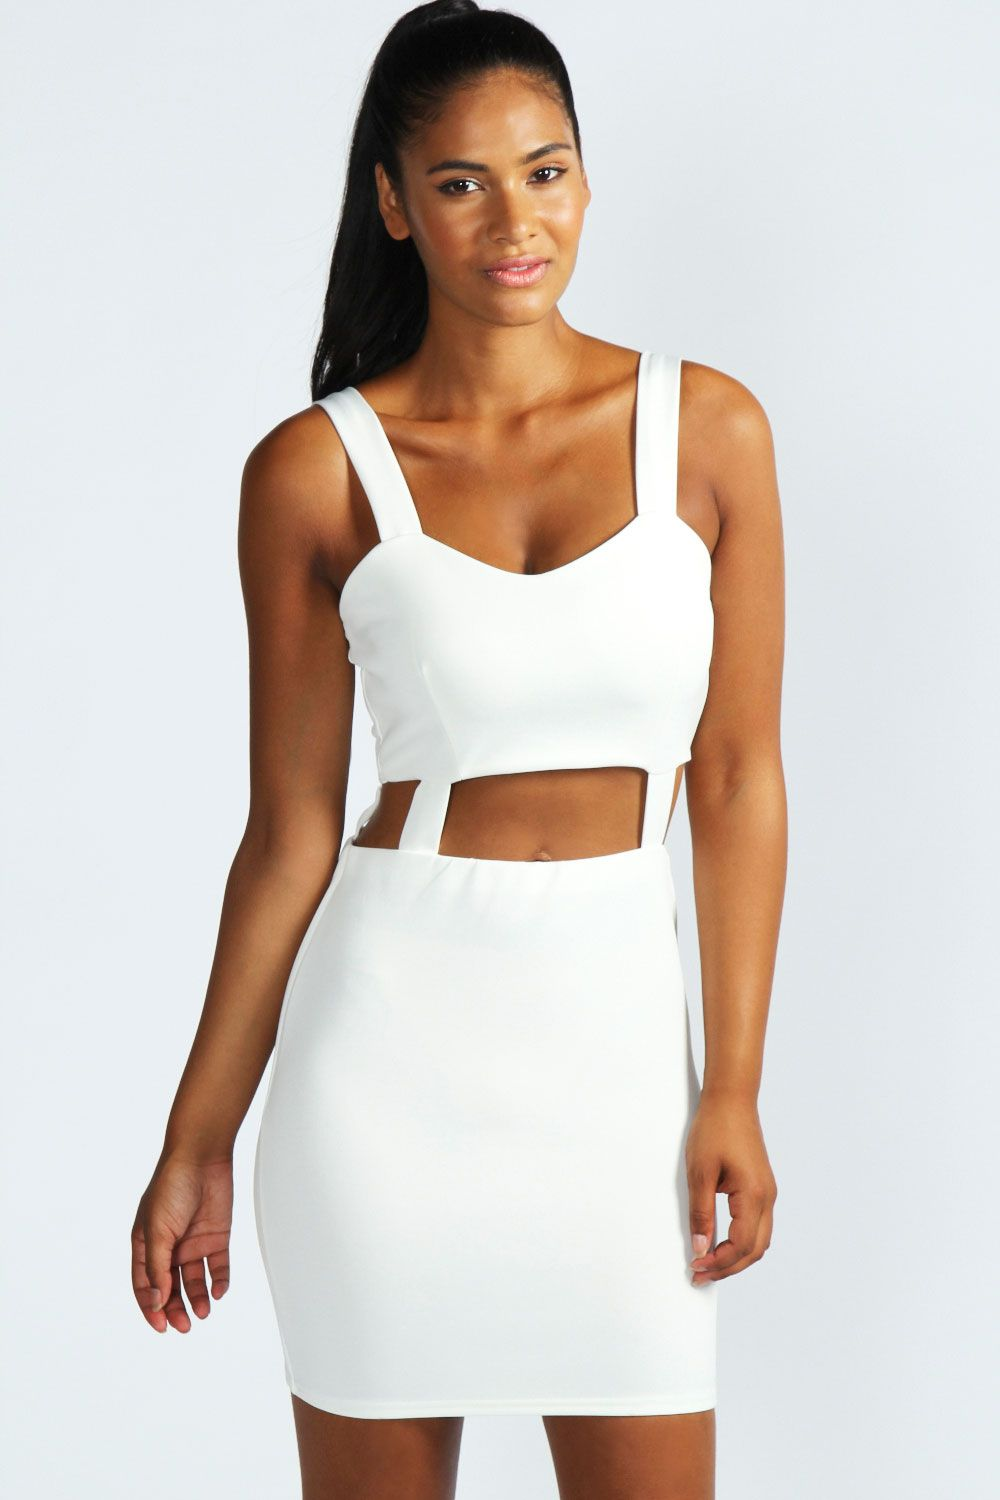 Dear-Lover White One-shoulder Cutout Club Bodycon Dress Wholesale ...